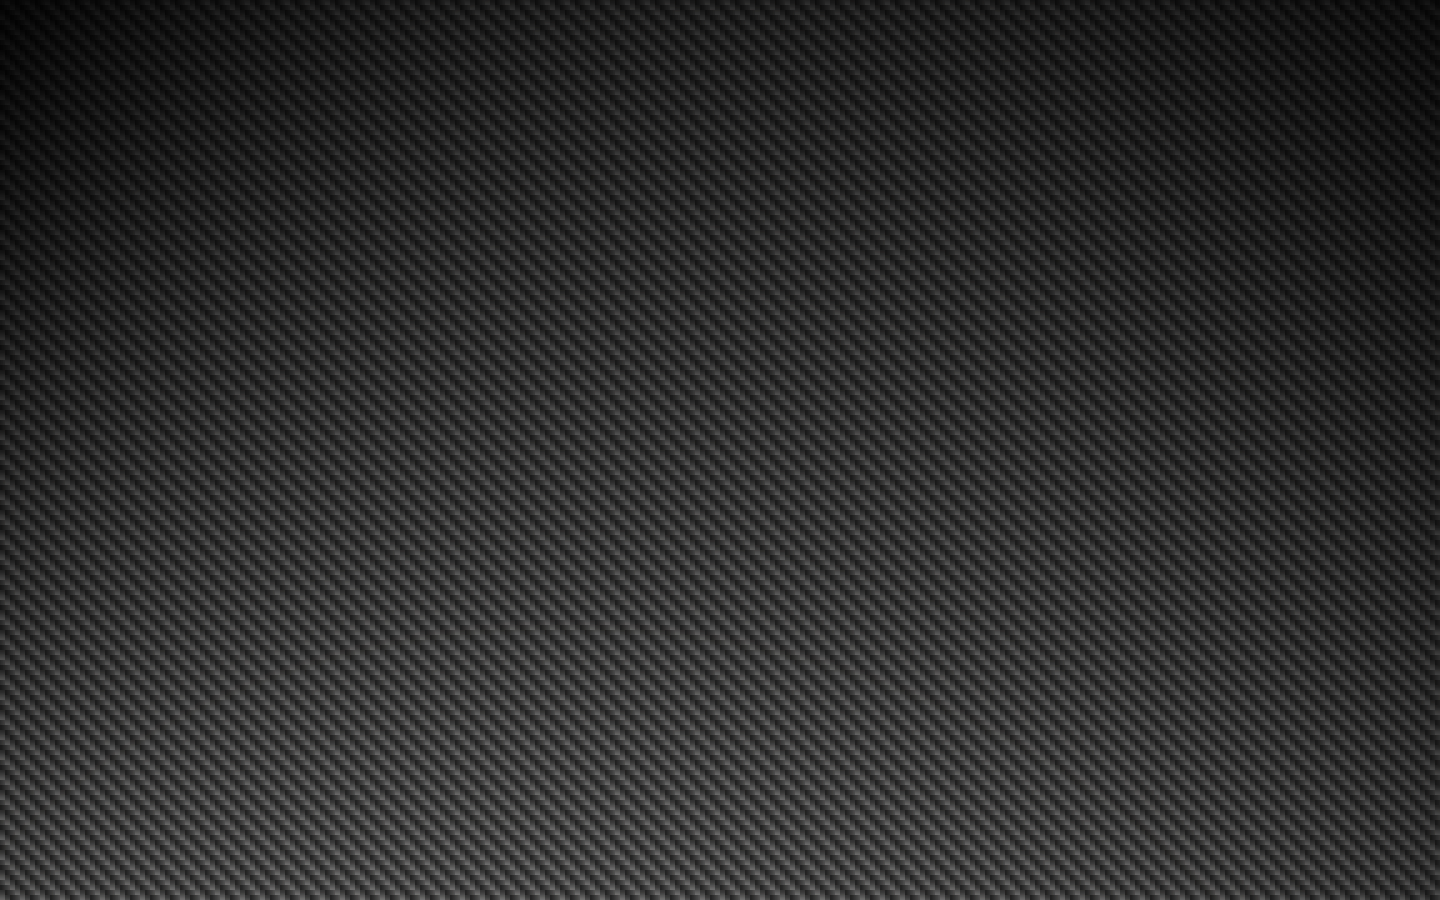 1440x900 FREE! Carbon Fiber Wallpaper | ebin